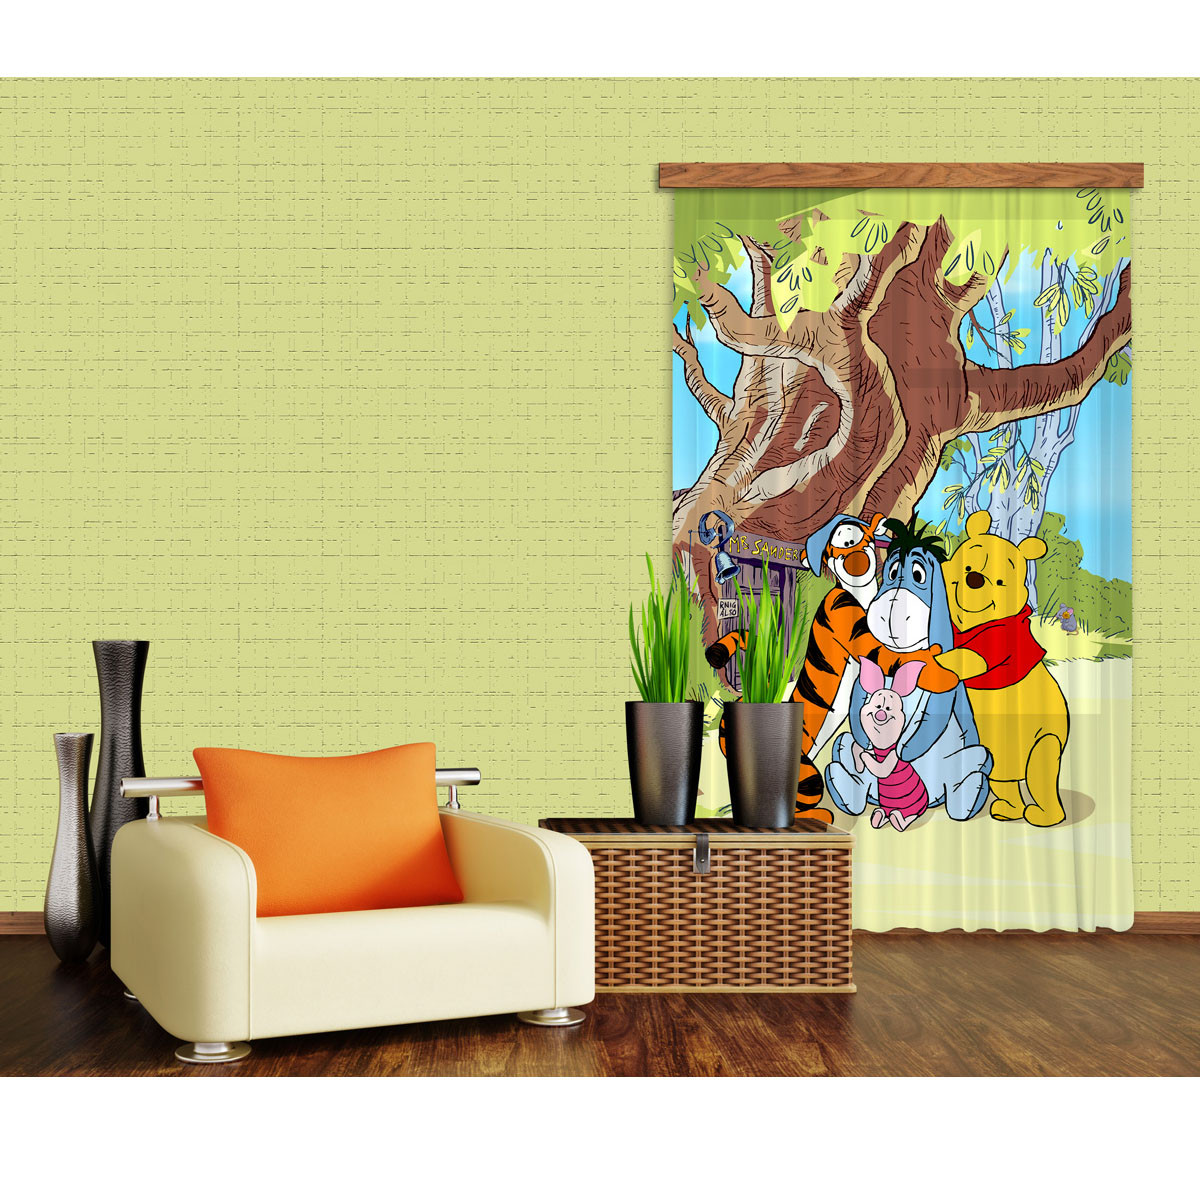 Rideaux Winnie l'Ourson Câlin Disney-Occultant : 140x245 cm